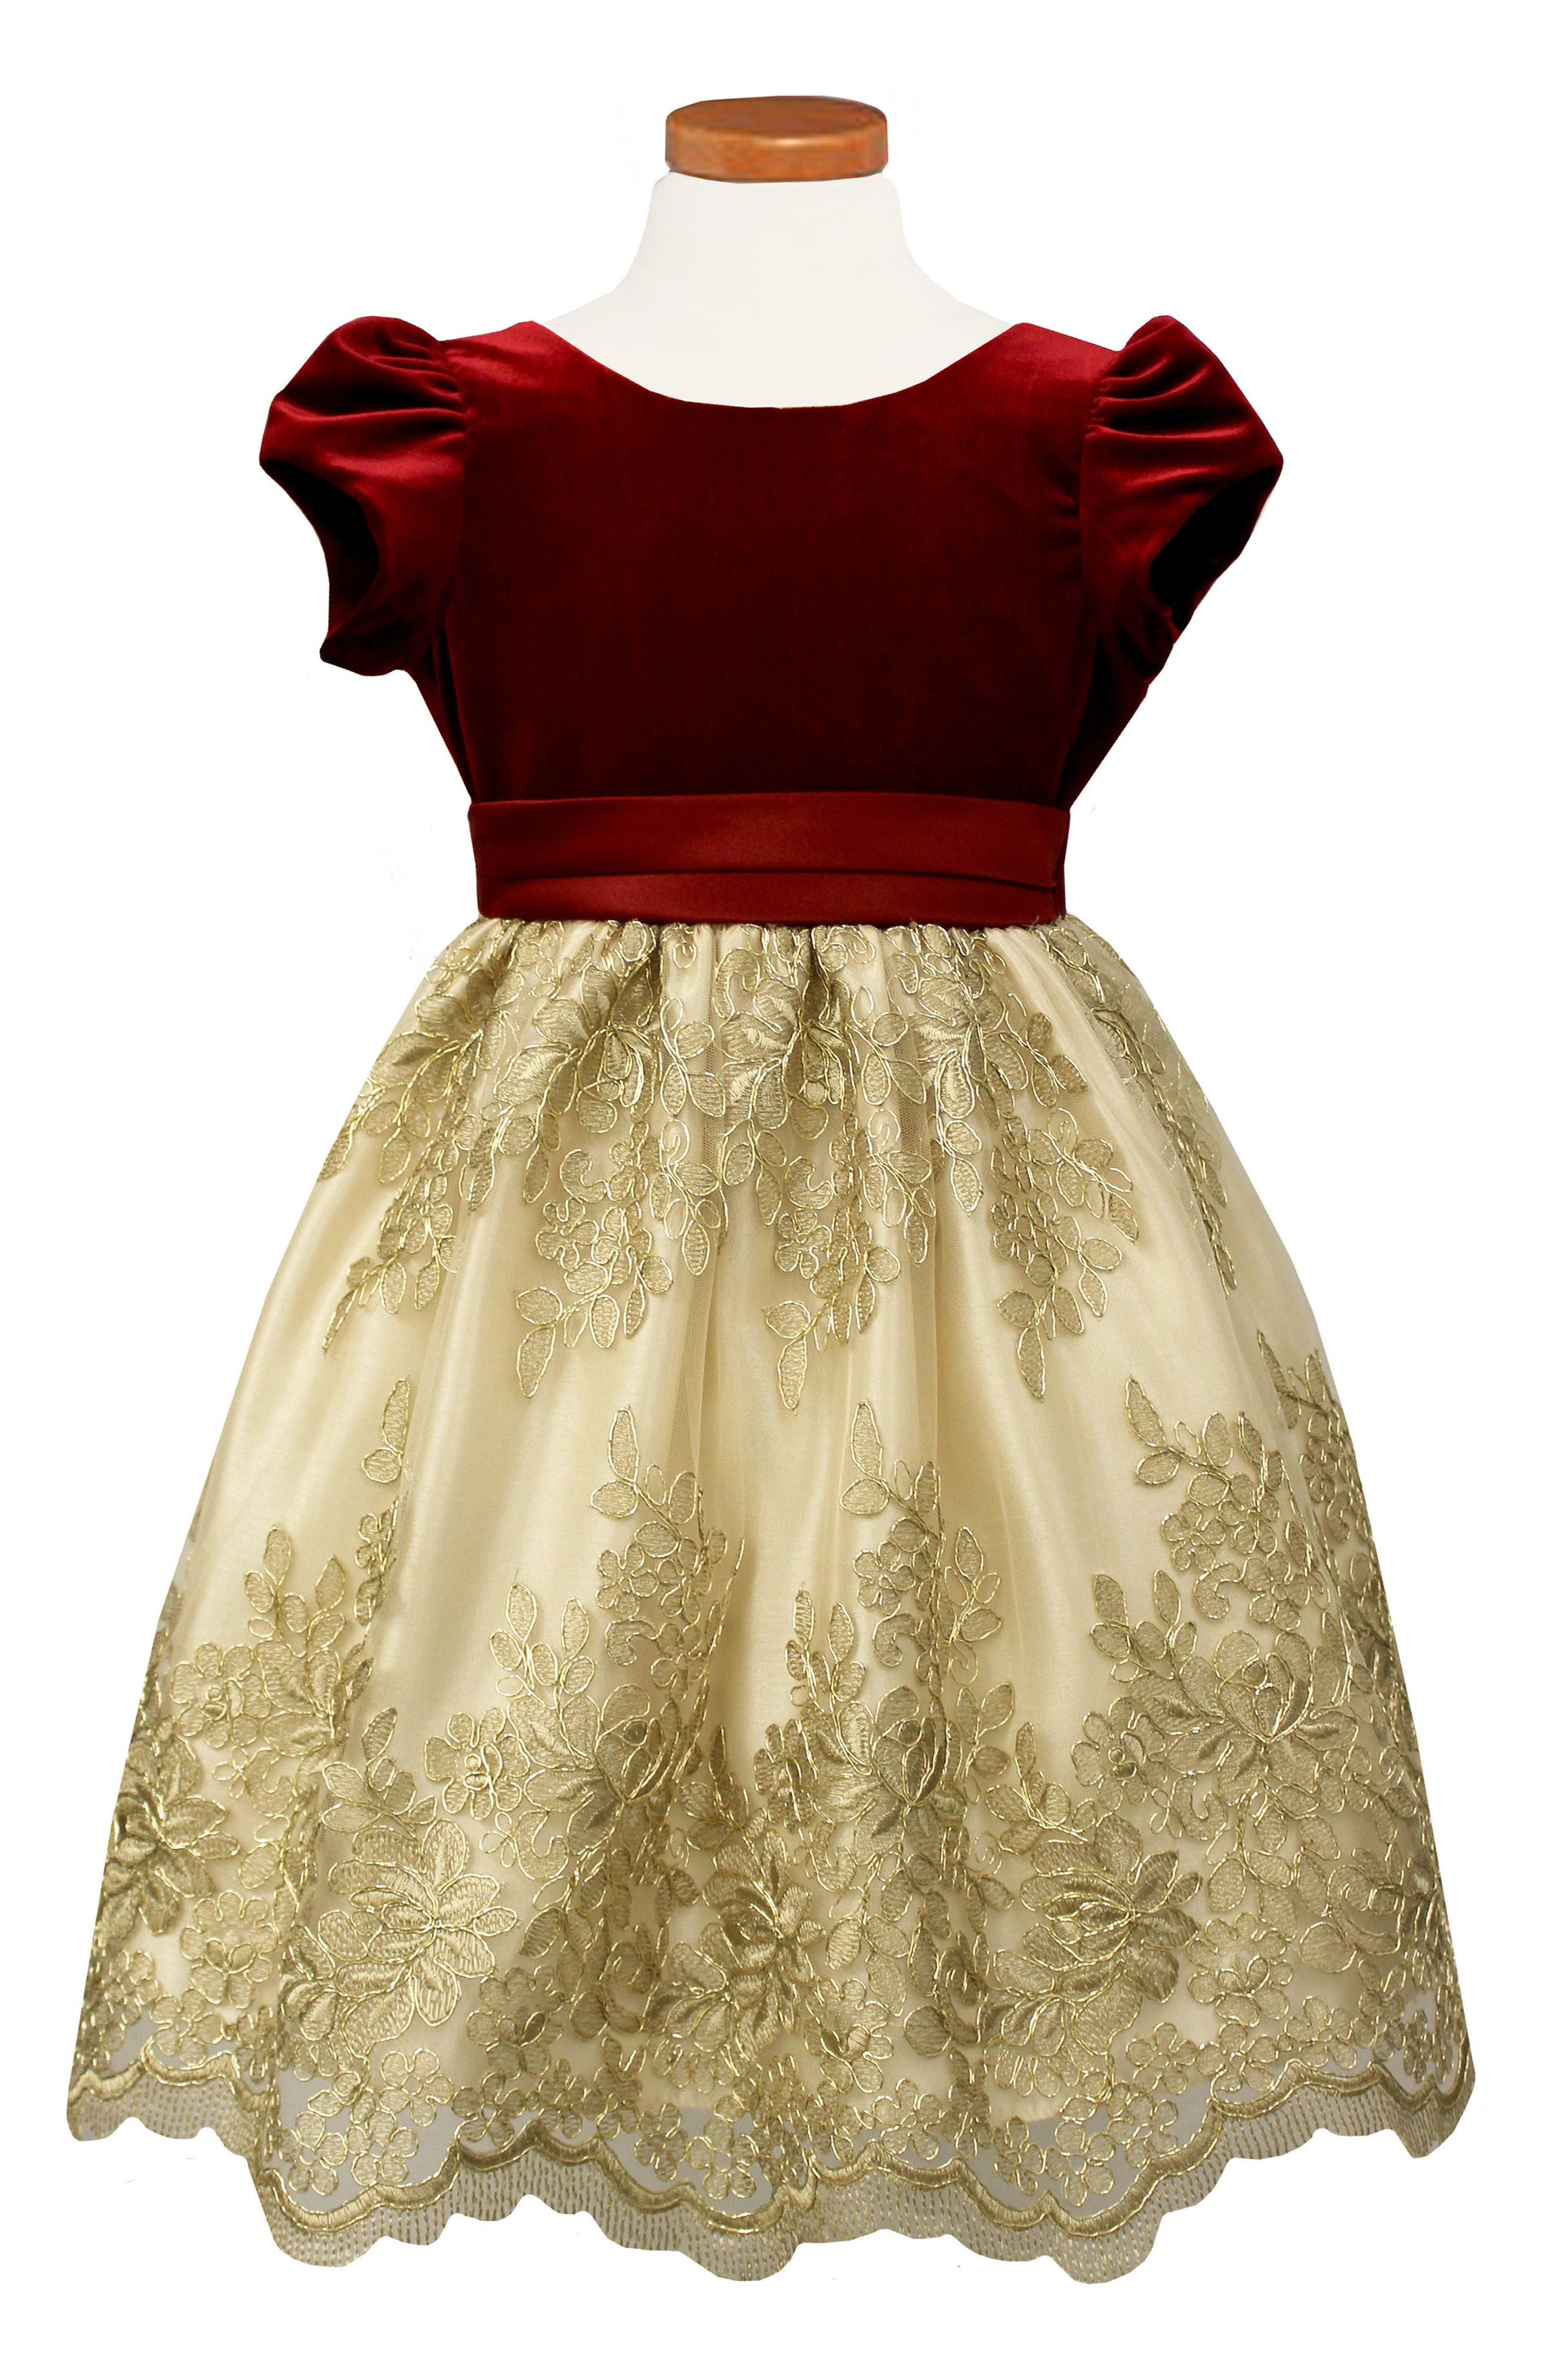 Floral Embroidered Party Dress,                             Main thumbnail 1, color,                             Red/ Gold